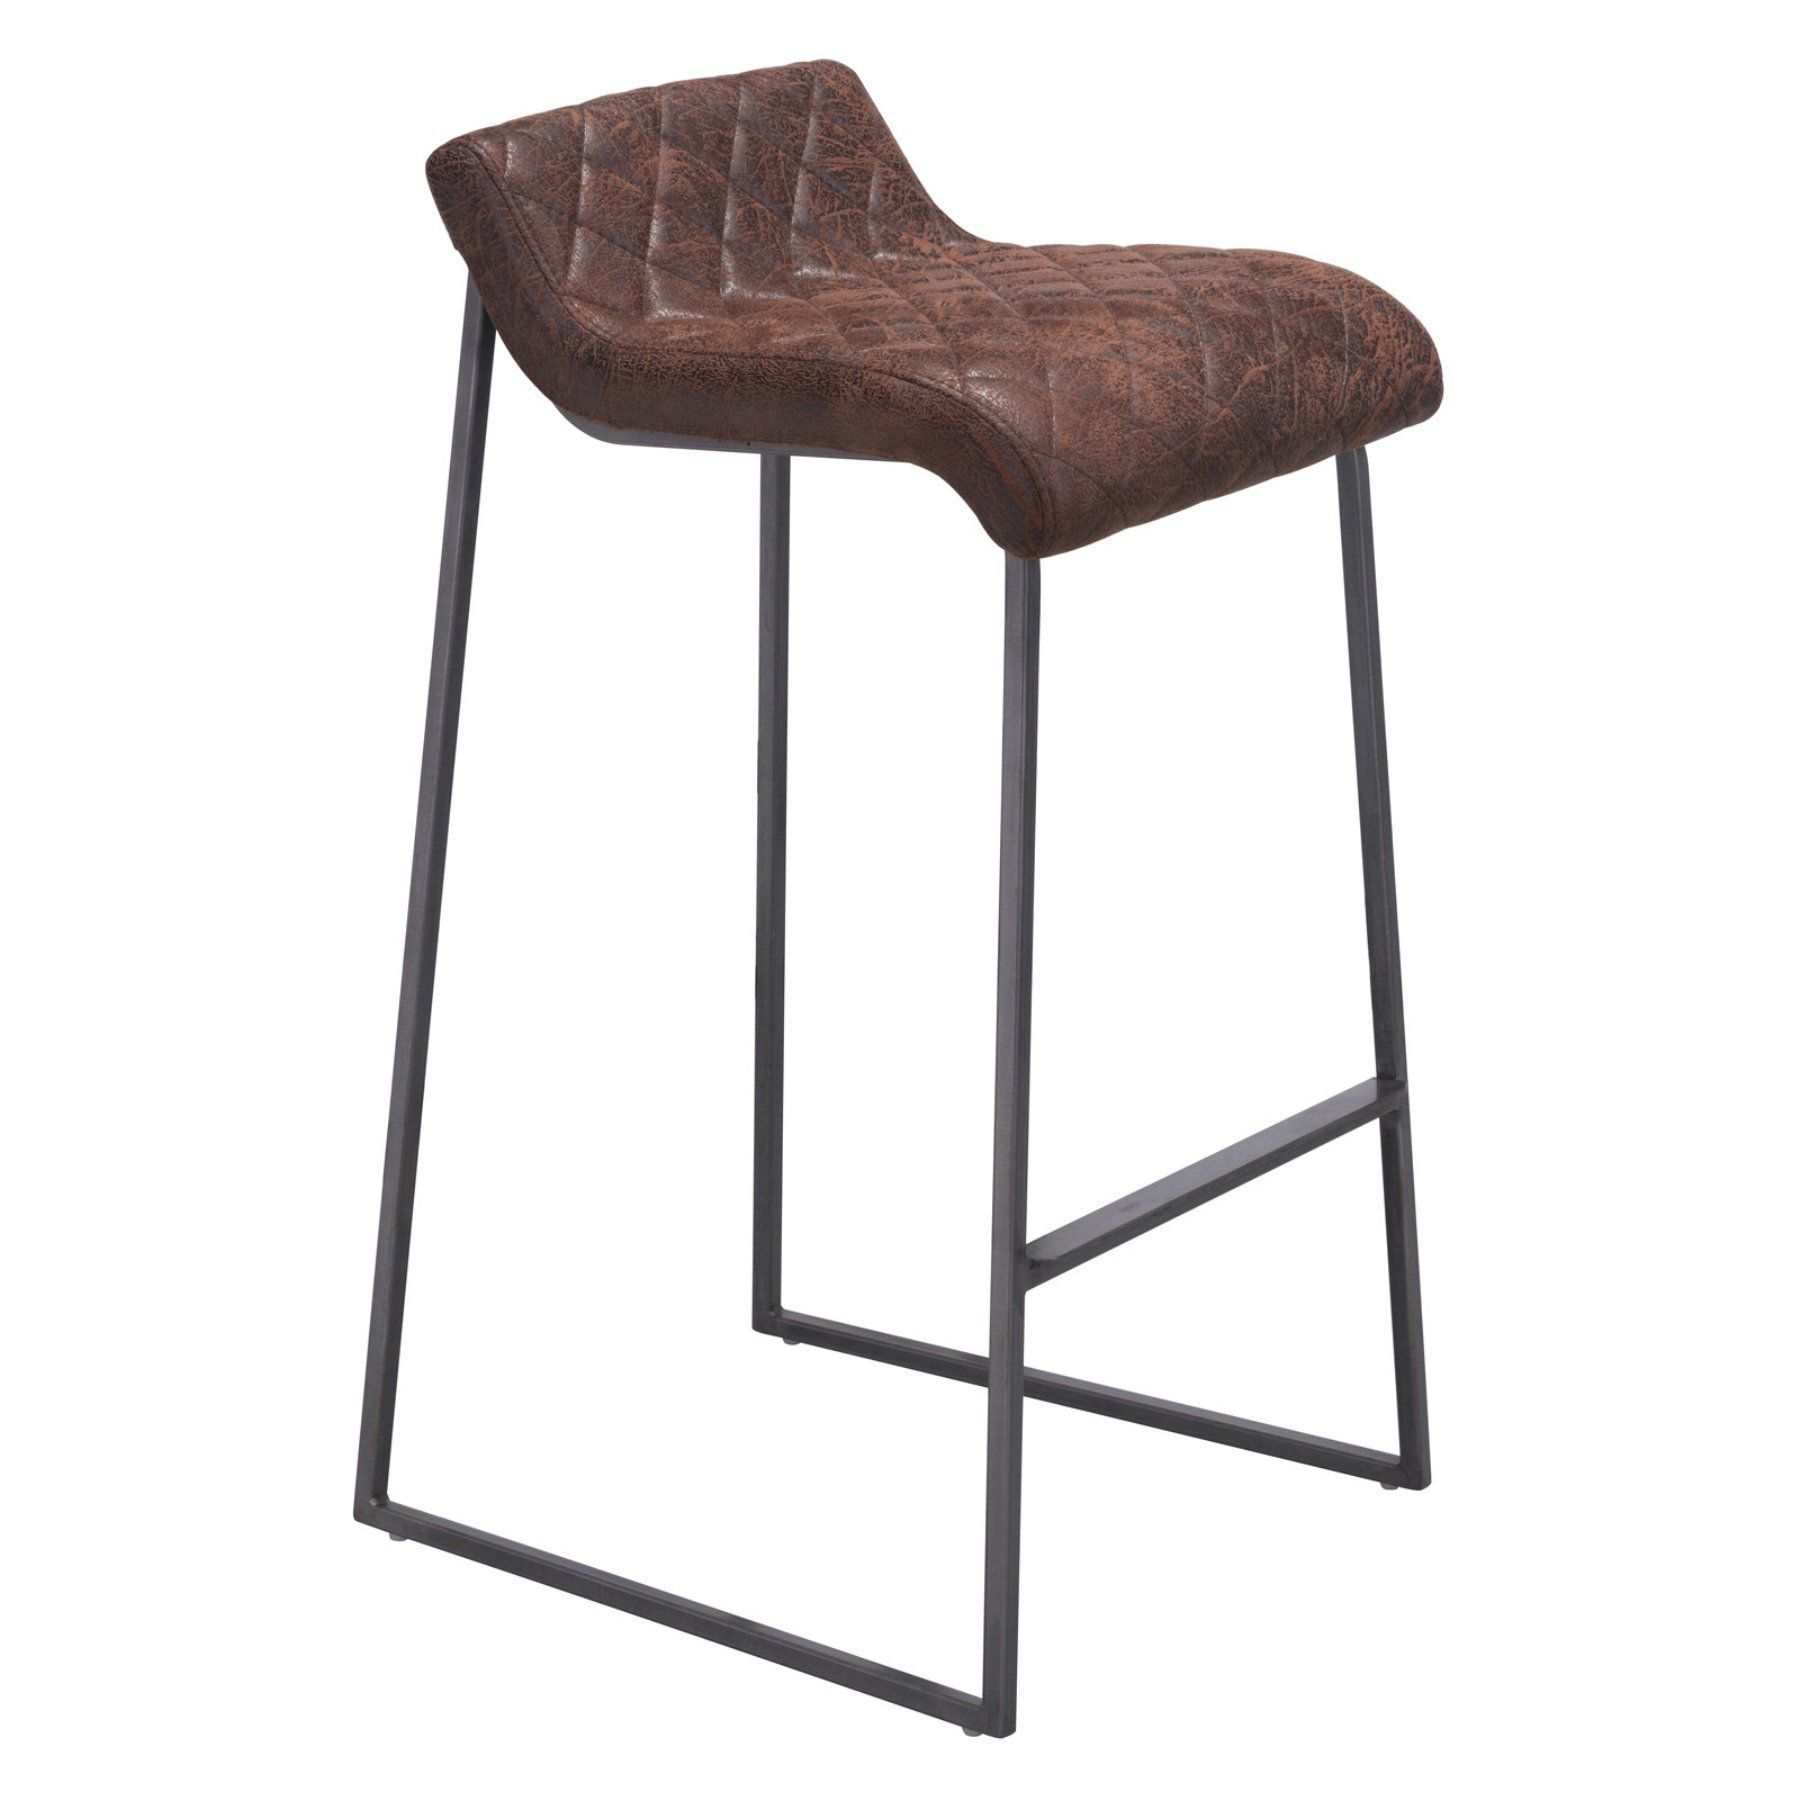 Zuo Modern Contemporary Father 31 in Bar Stool Set of 2